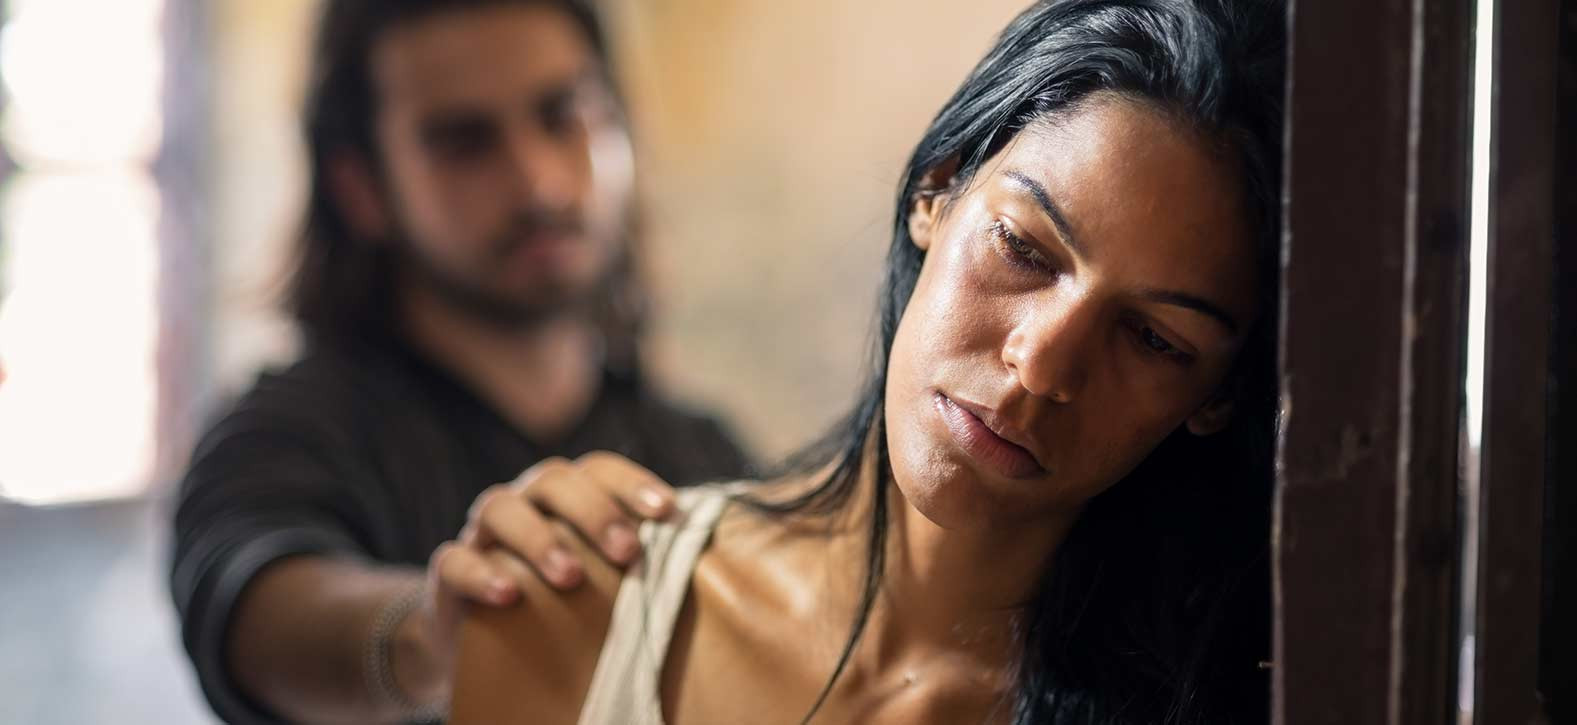 Experienced Domestic Violence Defense Lawyer – Frequently Asked Questions